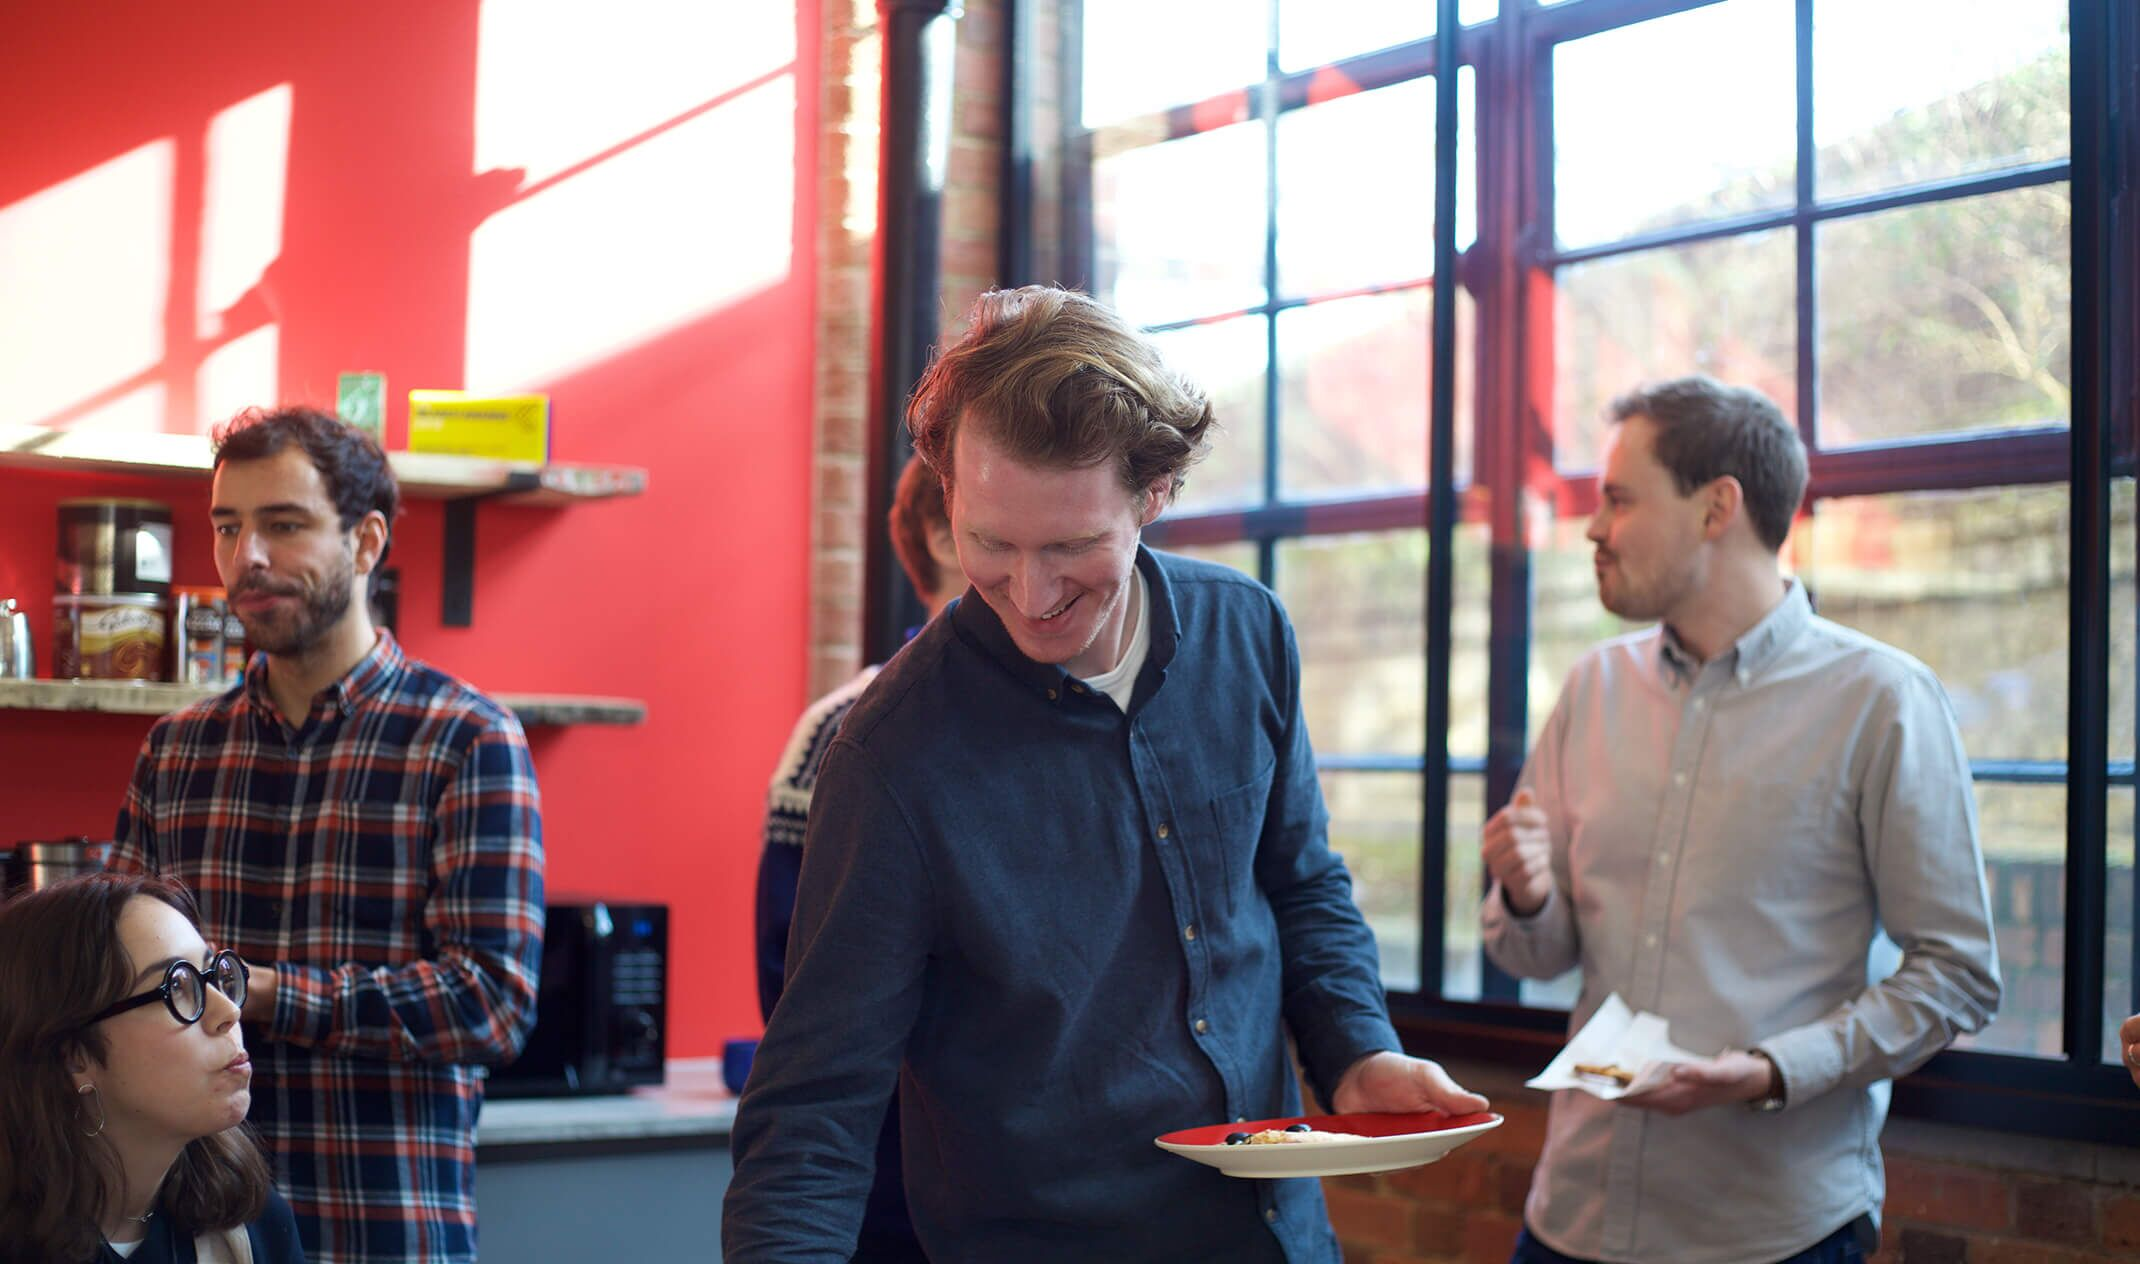 man smiling at work pizza lunch